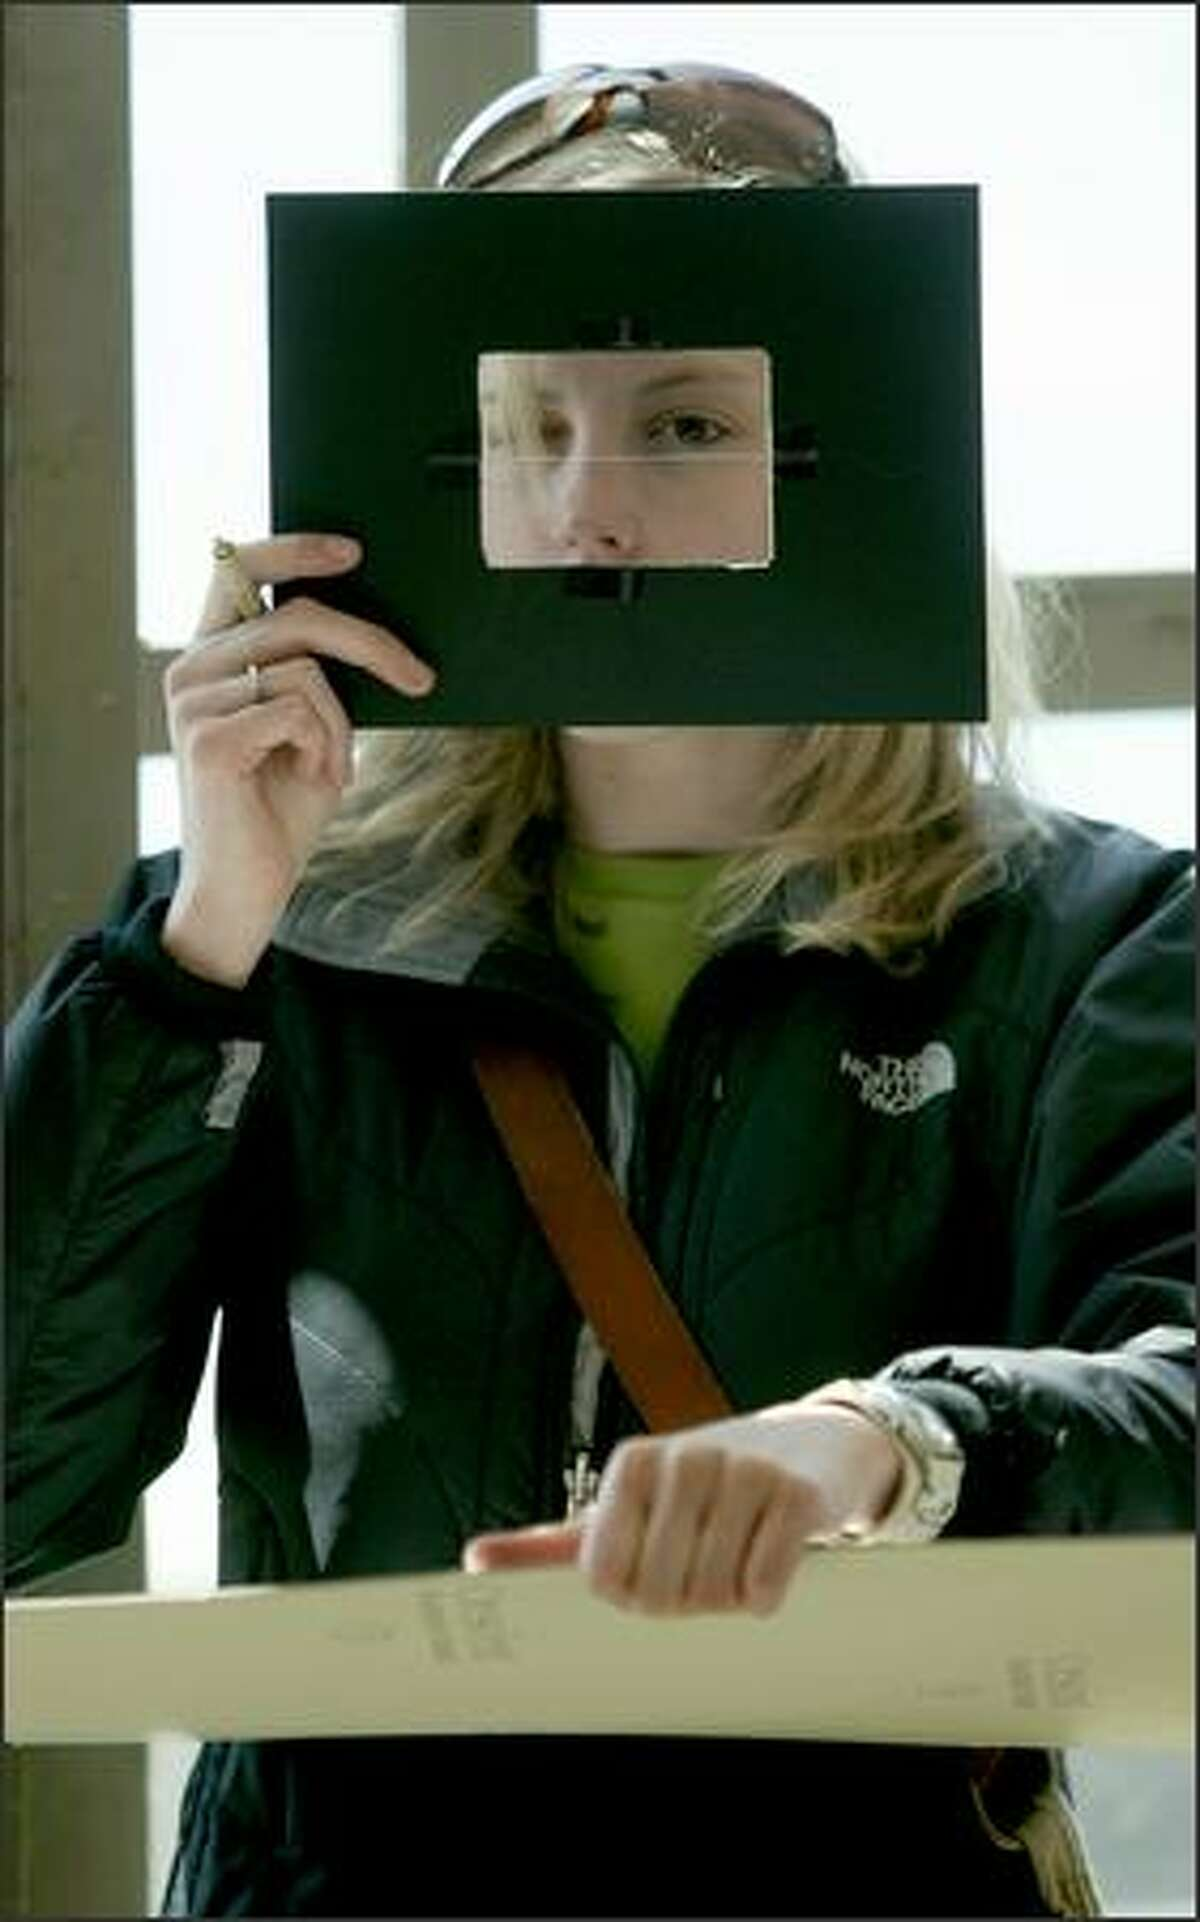 Samantha Nicklay, an architecture student at the University of Washington, peers through a cardboard viewfinder Tuesday as she inks perspective drawings of Pike Place Market in Seattle. The viewfinder aids in composition and helps gauge lines as they converge in perspective.